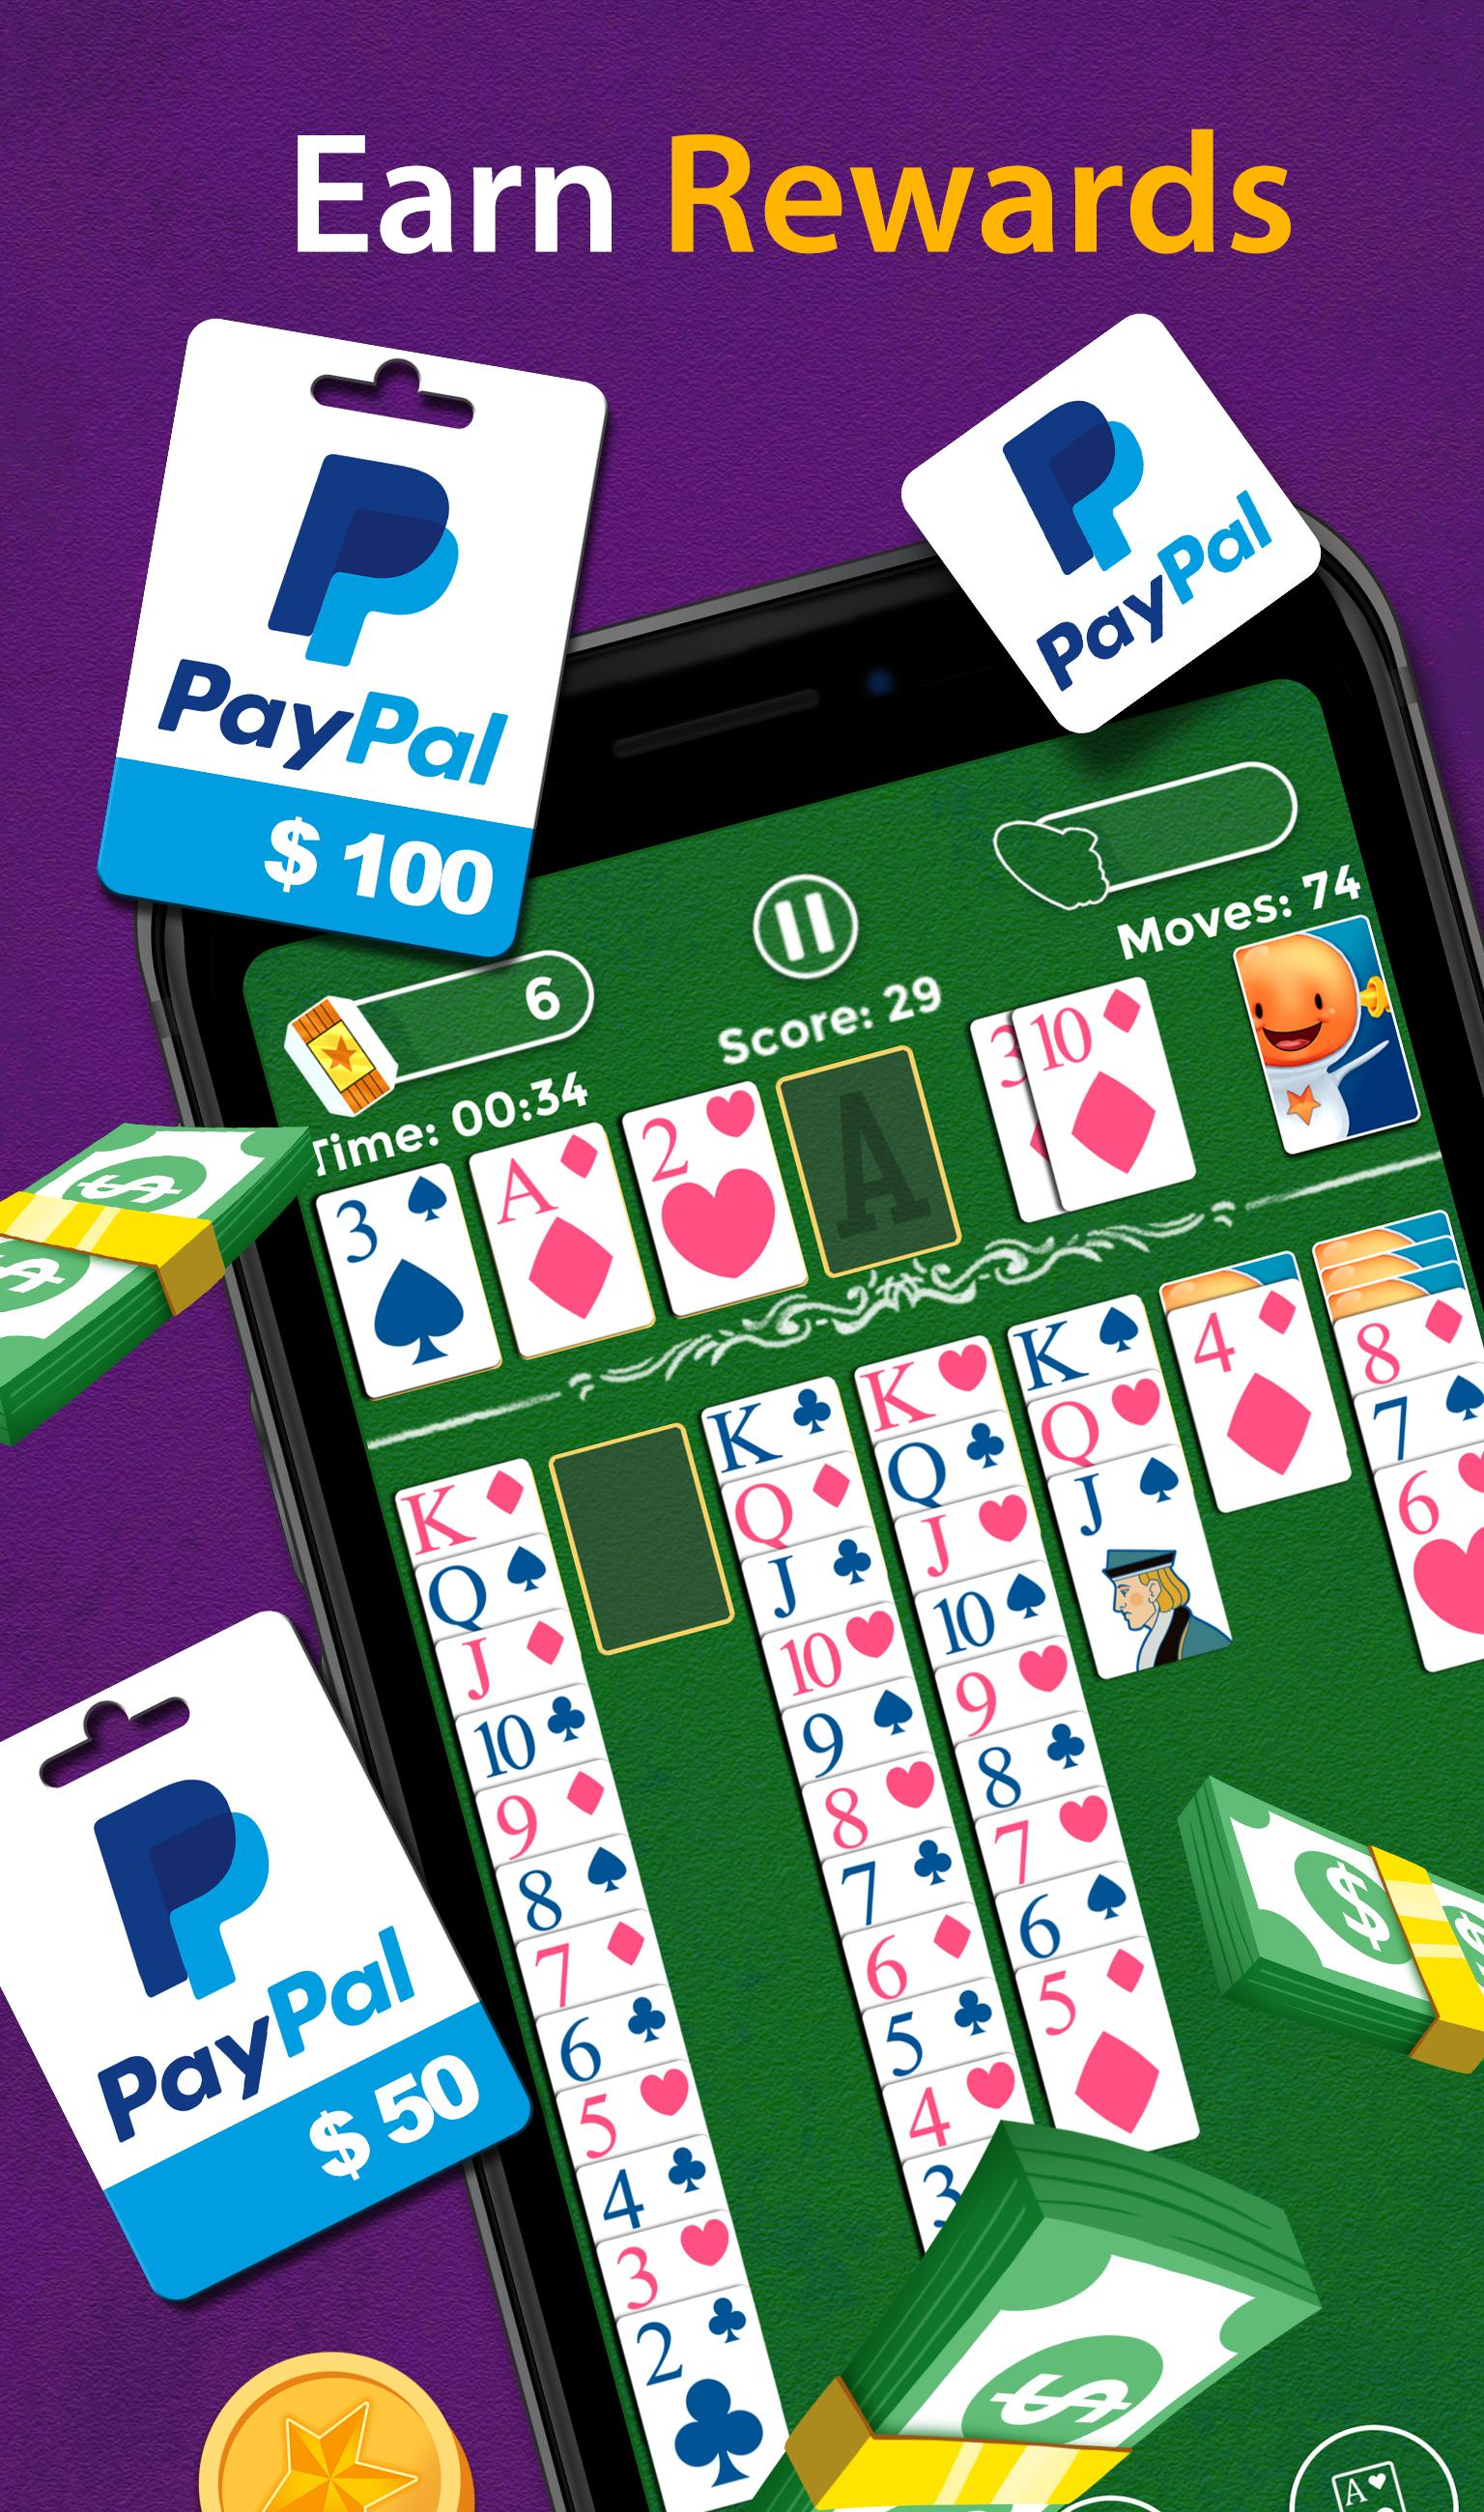 Solitaire Make Free Money and Play the Card Game 1.8.5 Screenshot 4